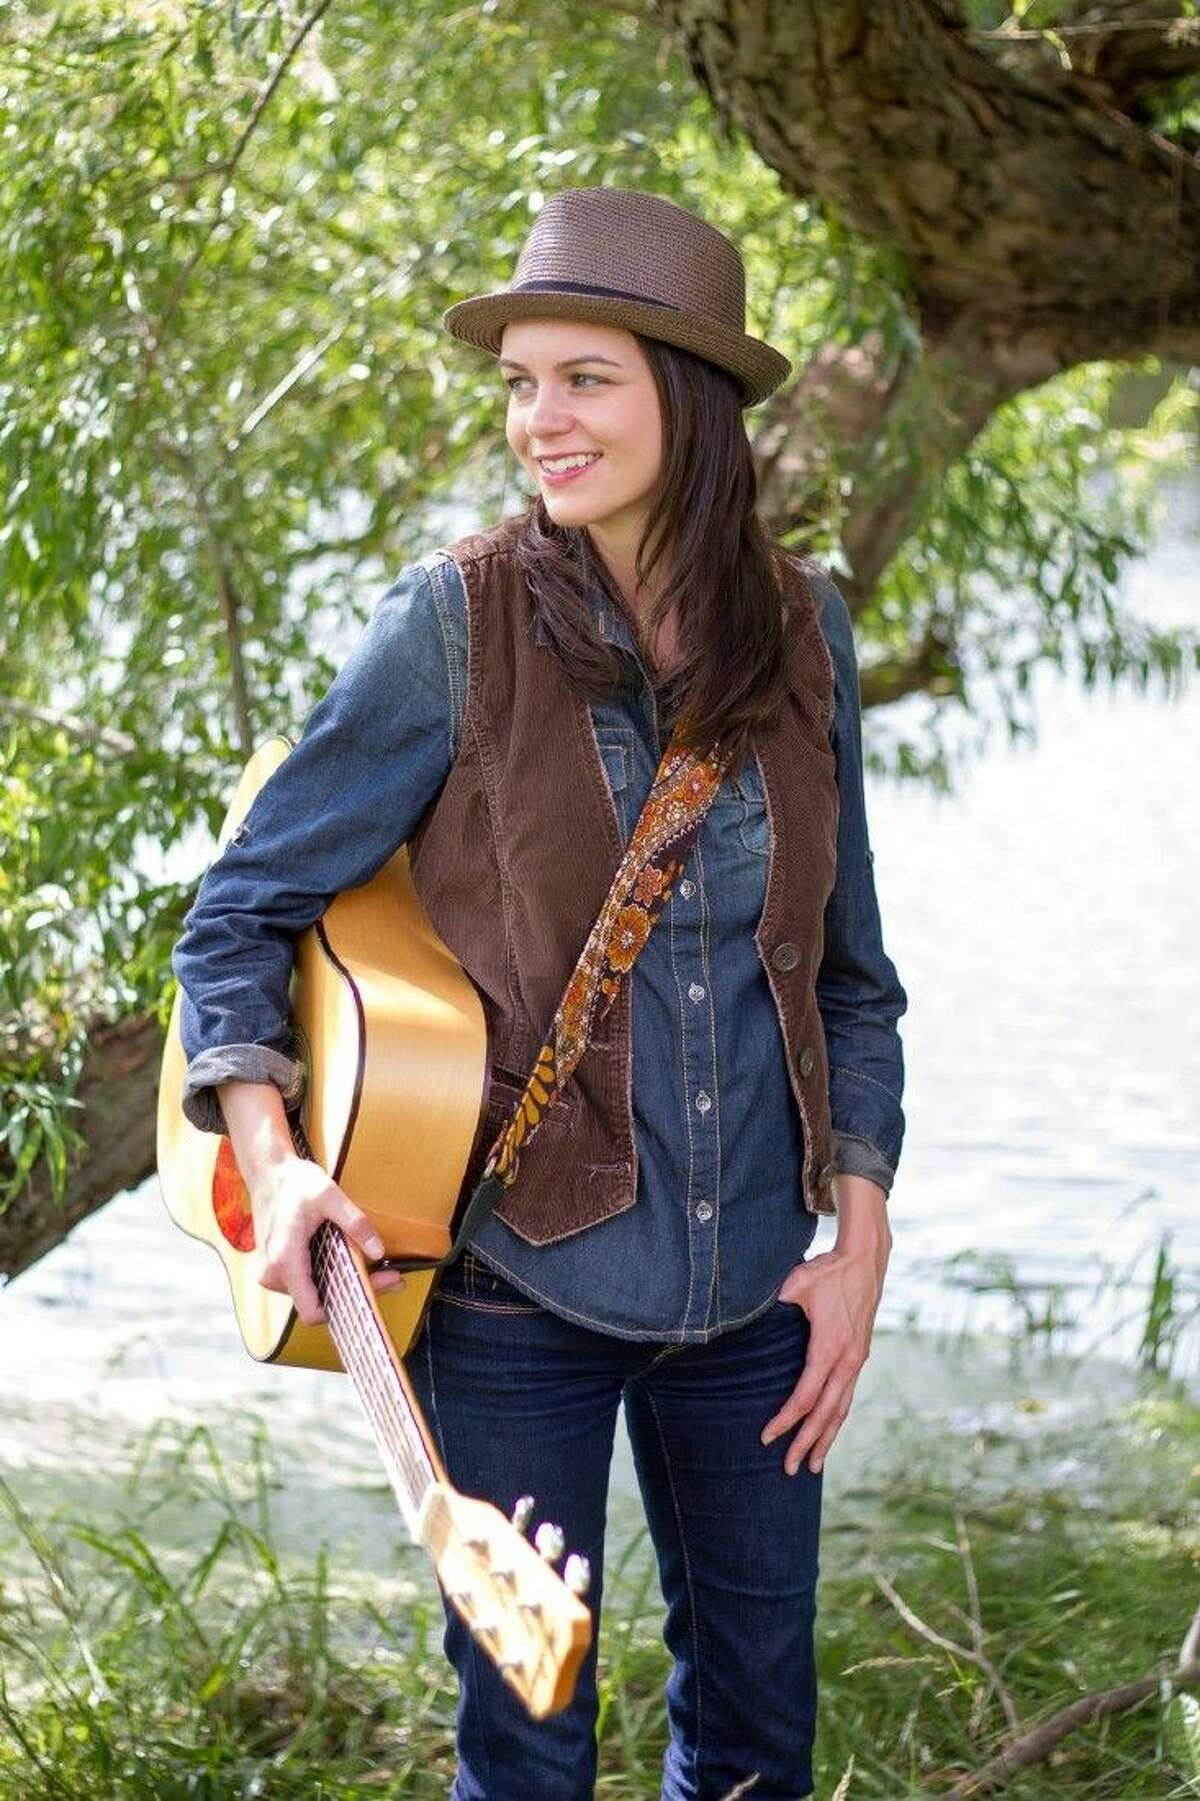 Folk rock singer Amy Goloby sings a message of hope to others.